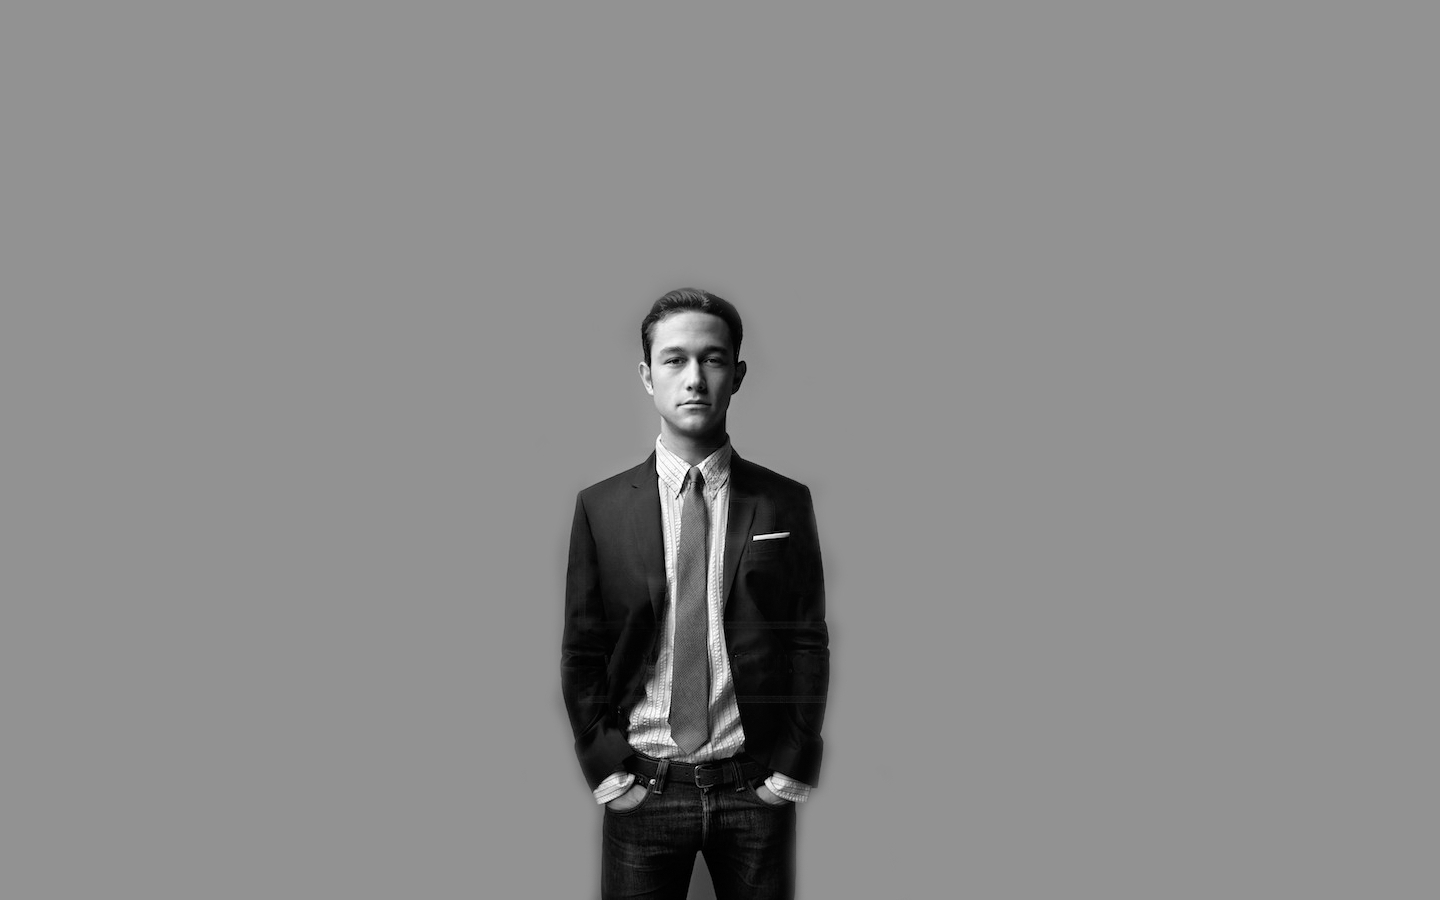 Joseph Gordon Levitt Wallpaper2